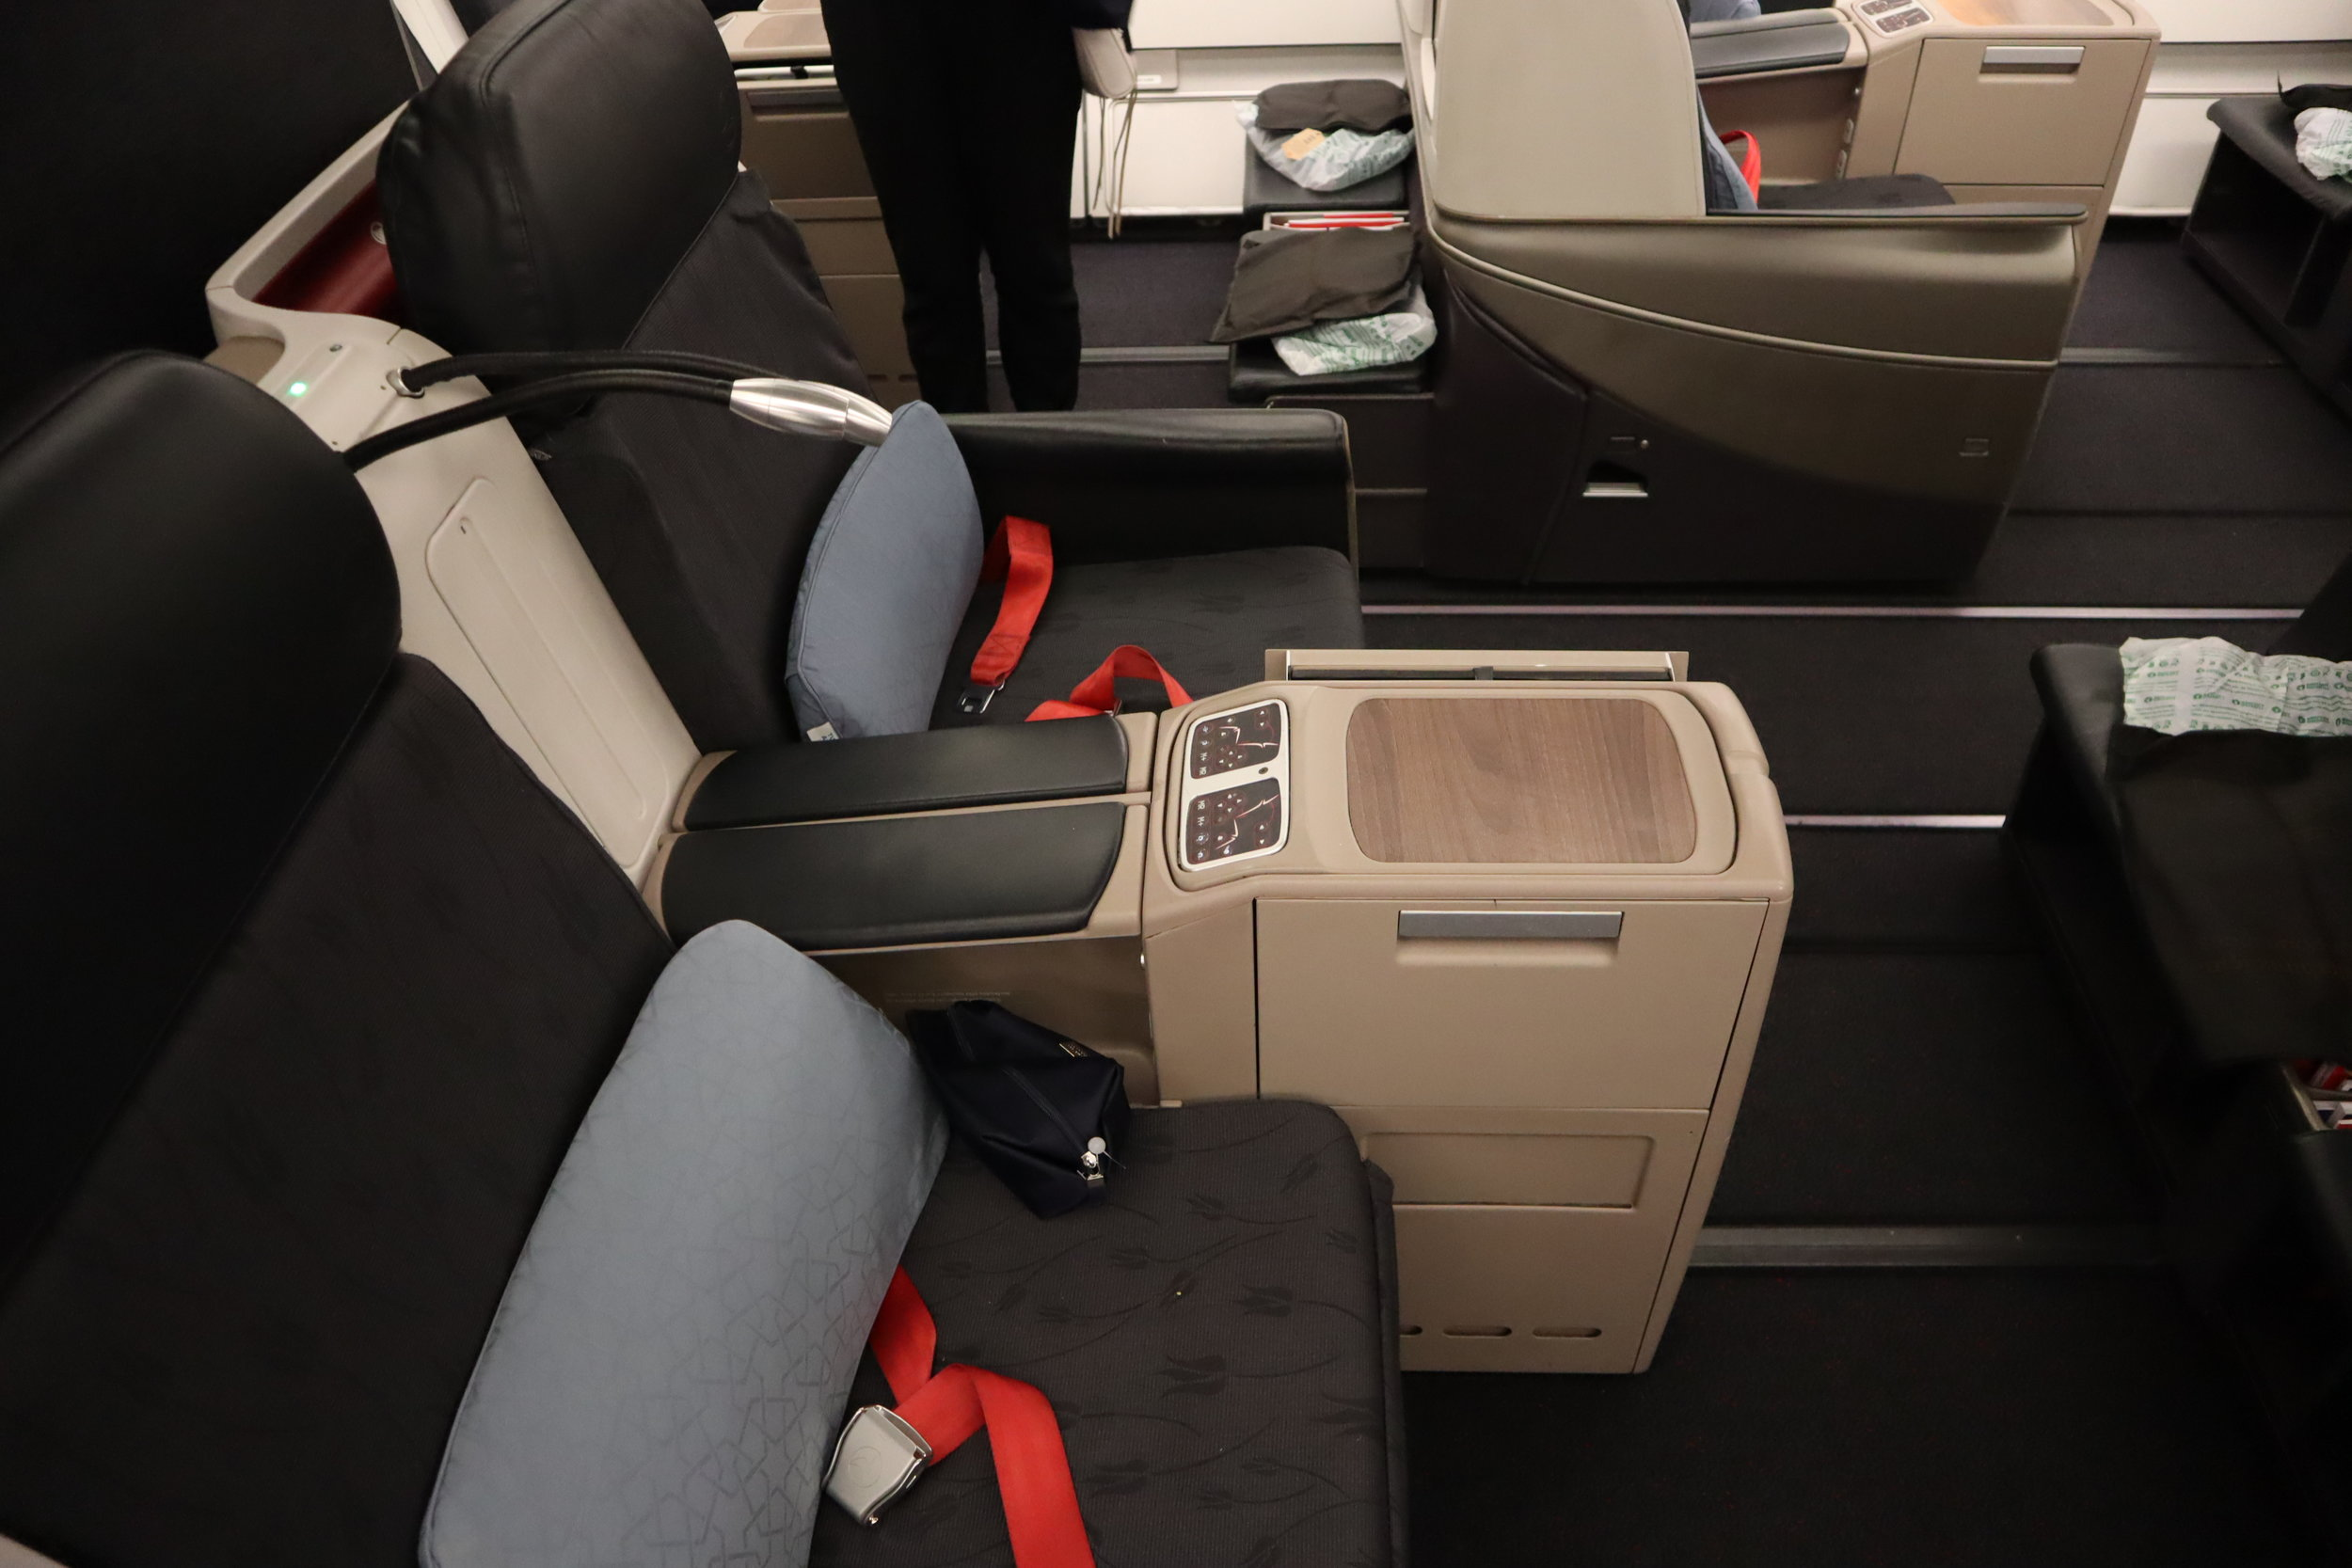 Turkish Airlines A330 business class – Seats 4D and 4E